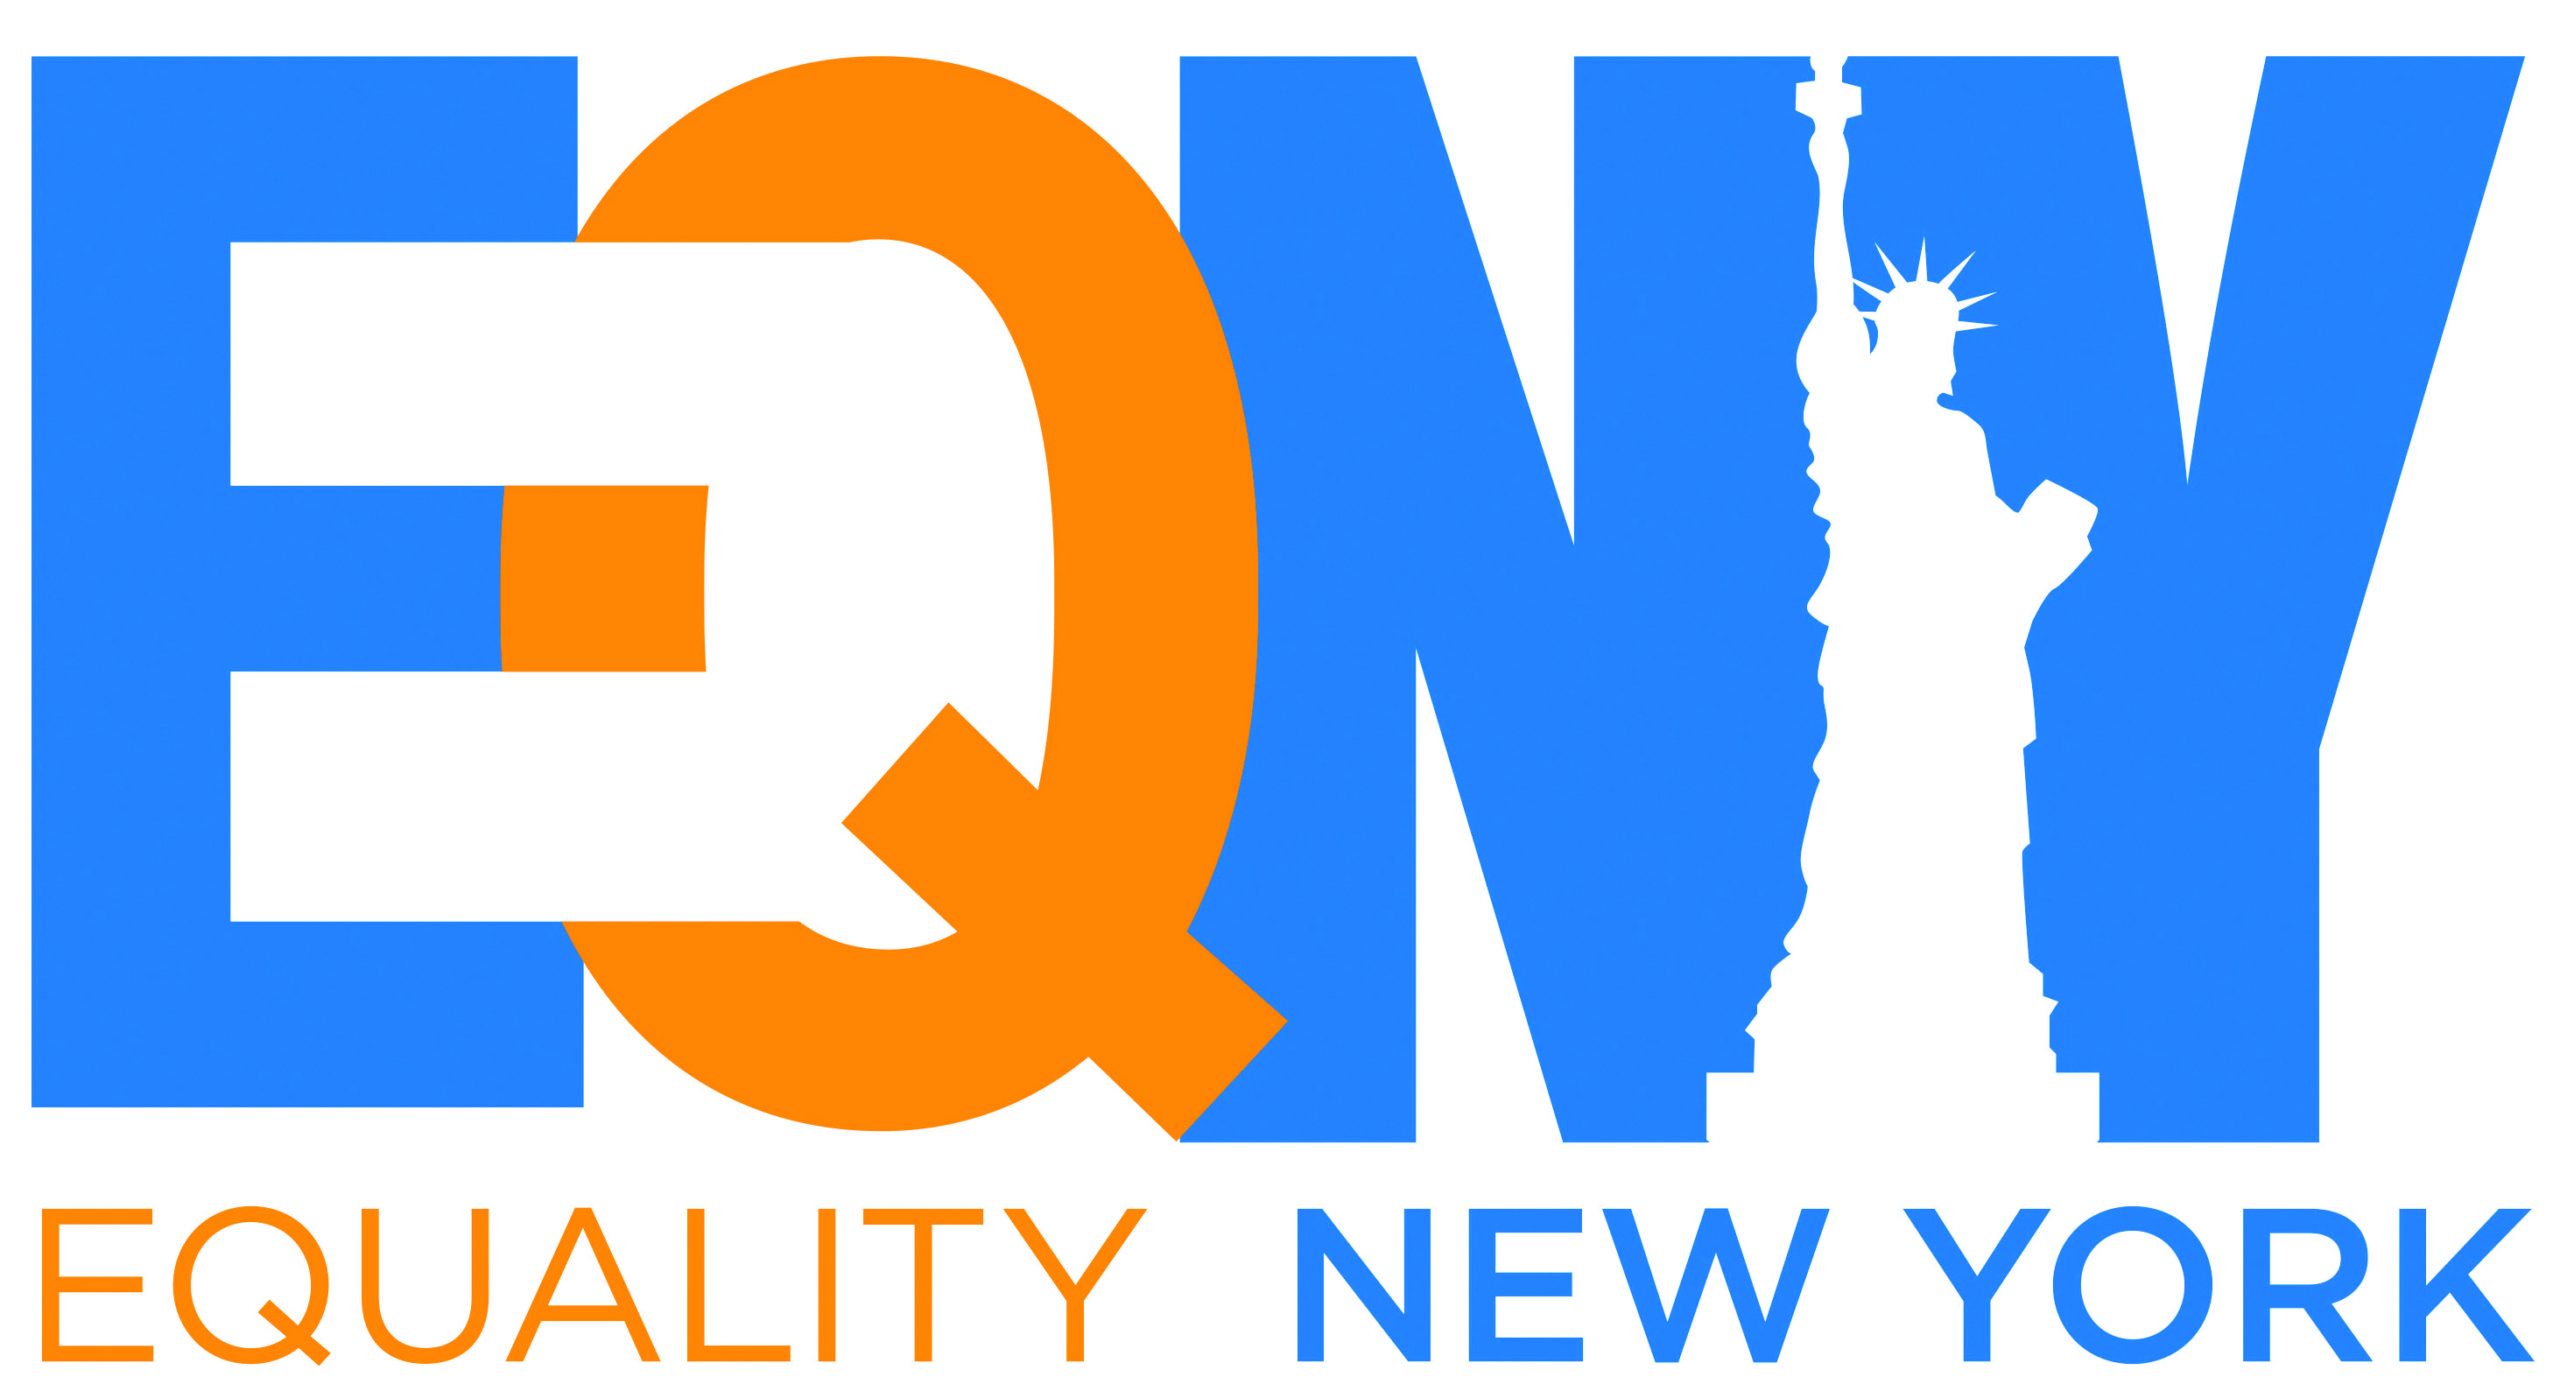 Equality New York LGBTQI Advocacy